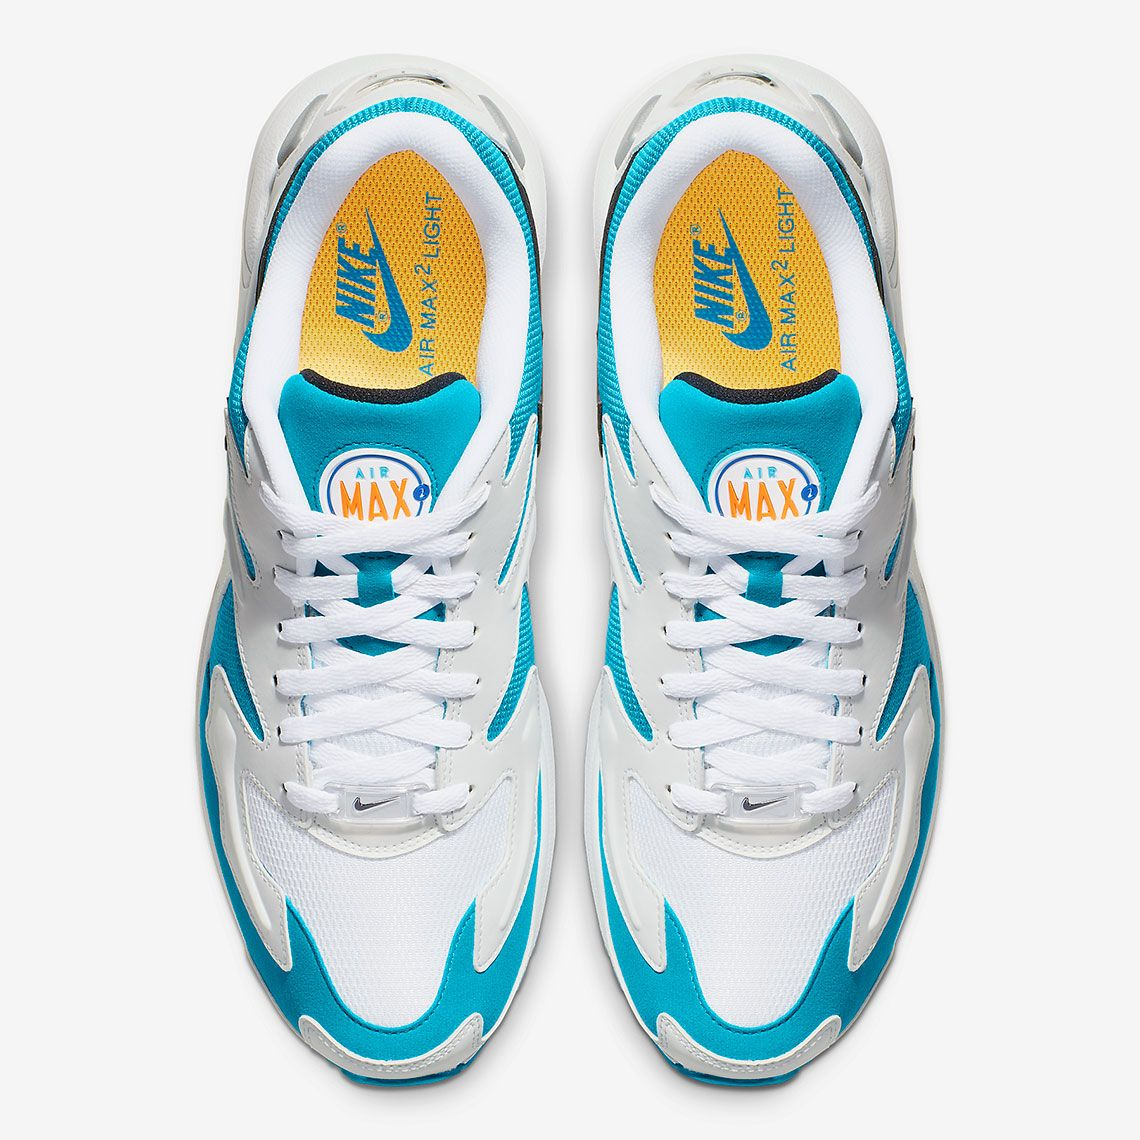 9867a756813 Nike Air Max 2 Light Dolphins AO1741-100 Release Info